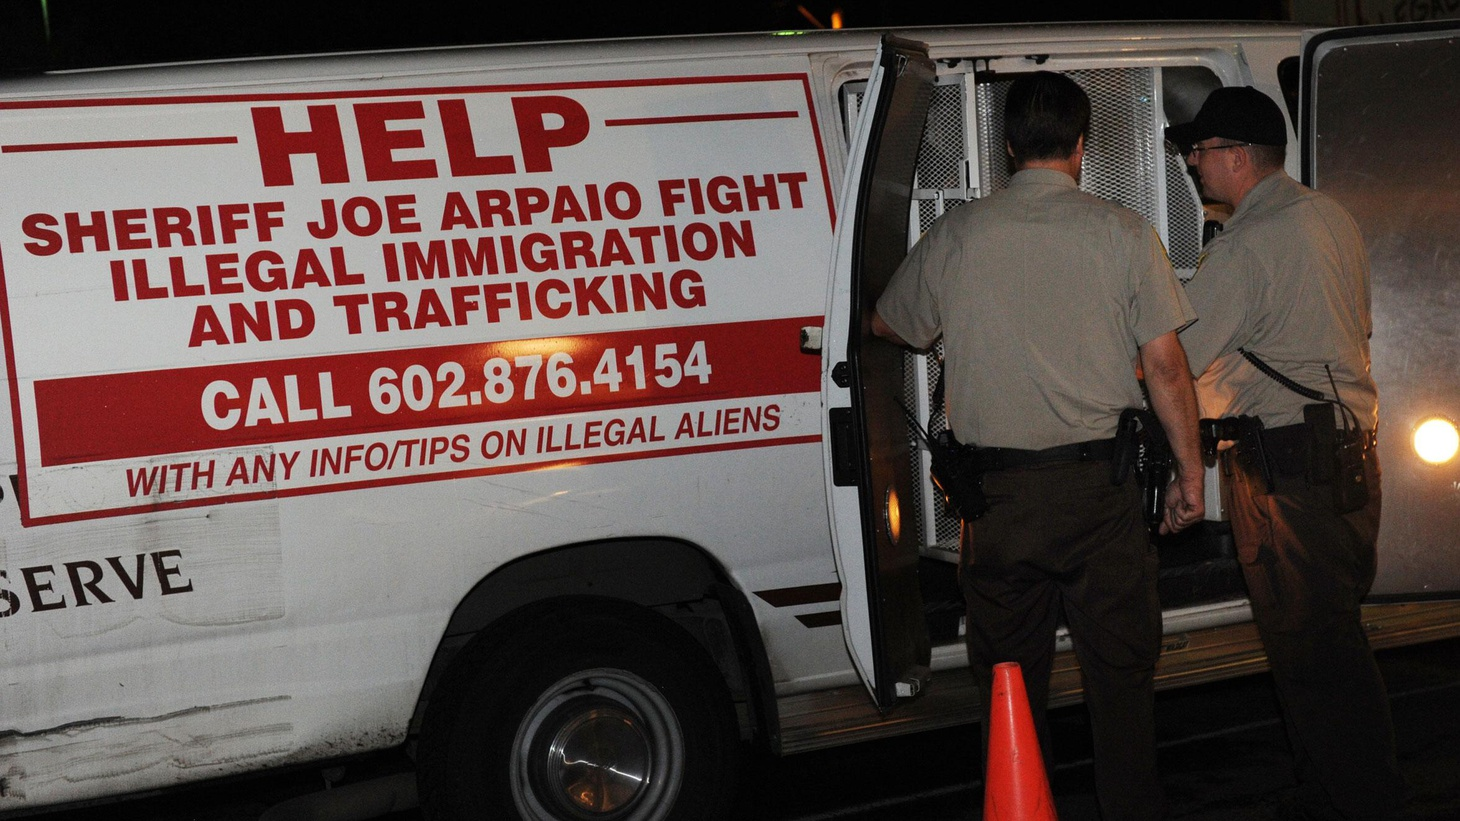 A federal court ruling means the toughest provisions of Arizona's new immigration law won't go into effect today. We hear about the law and the impact on Arizona's economy as demonstrators are being arrested in Phoenix. Also, has damage from the Gulf oil spill been exaggerated? On Reporter's Notebook, WikiLeaks, transparency and anonymity.